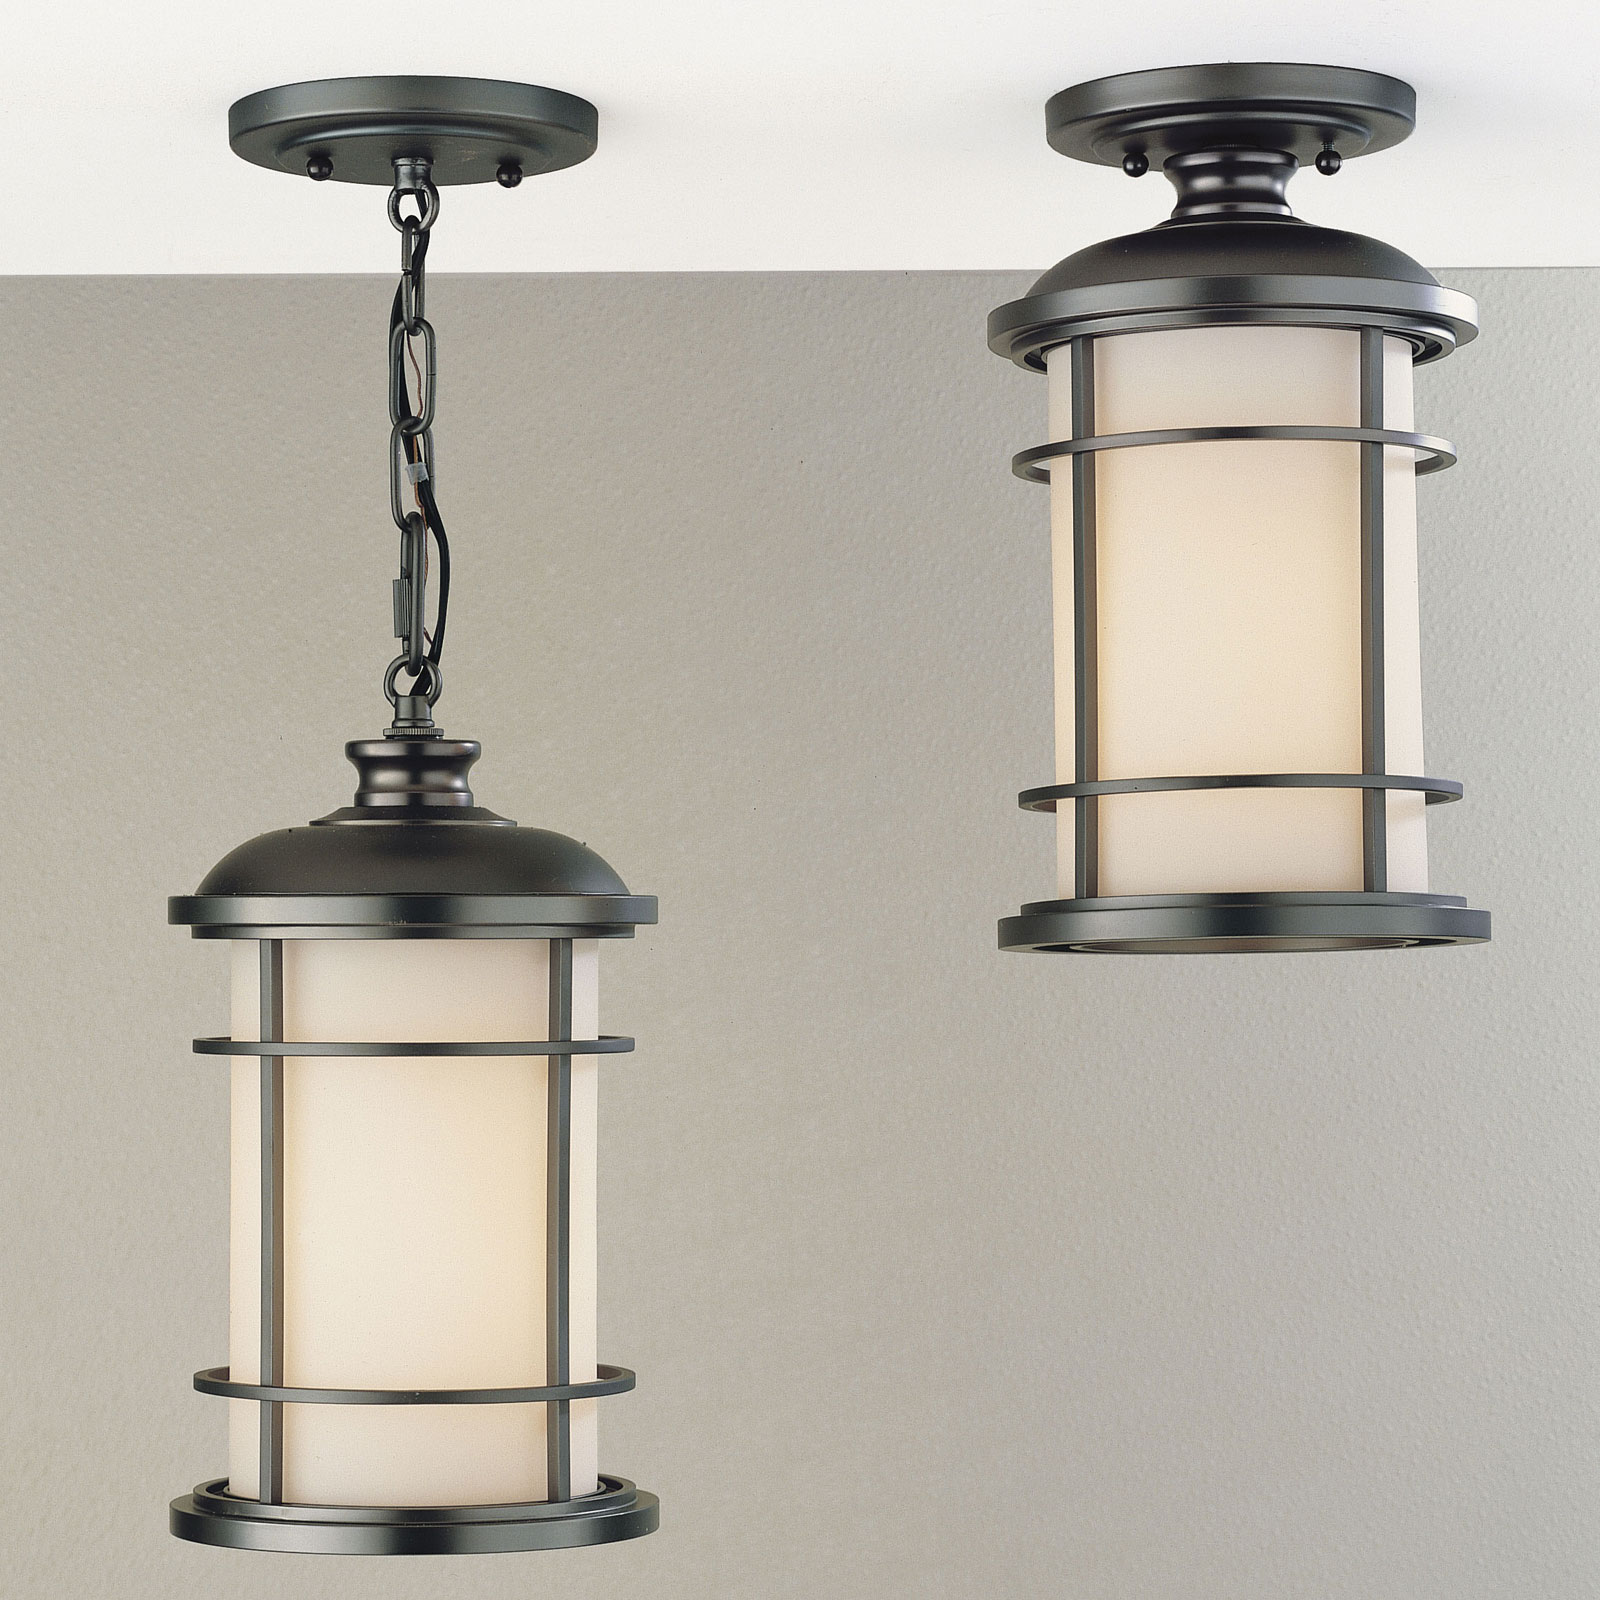 Feiss Lighthouse Outdoor Hanging/Ceiling Light   12.5H In. Burnished Bronze